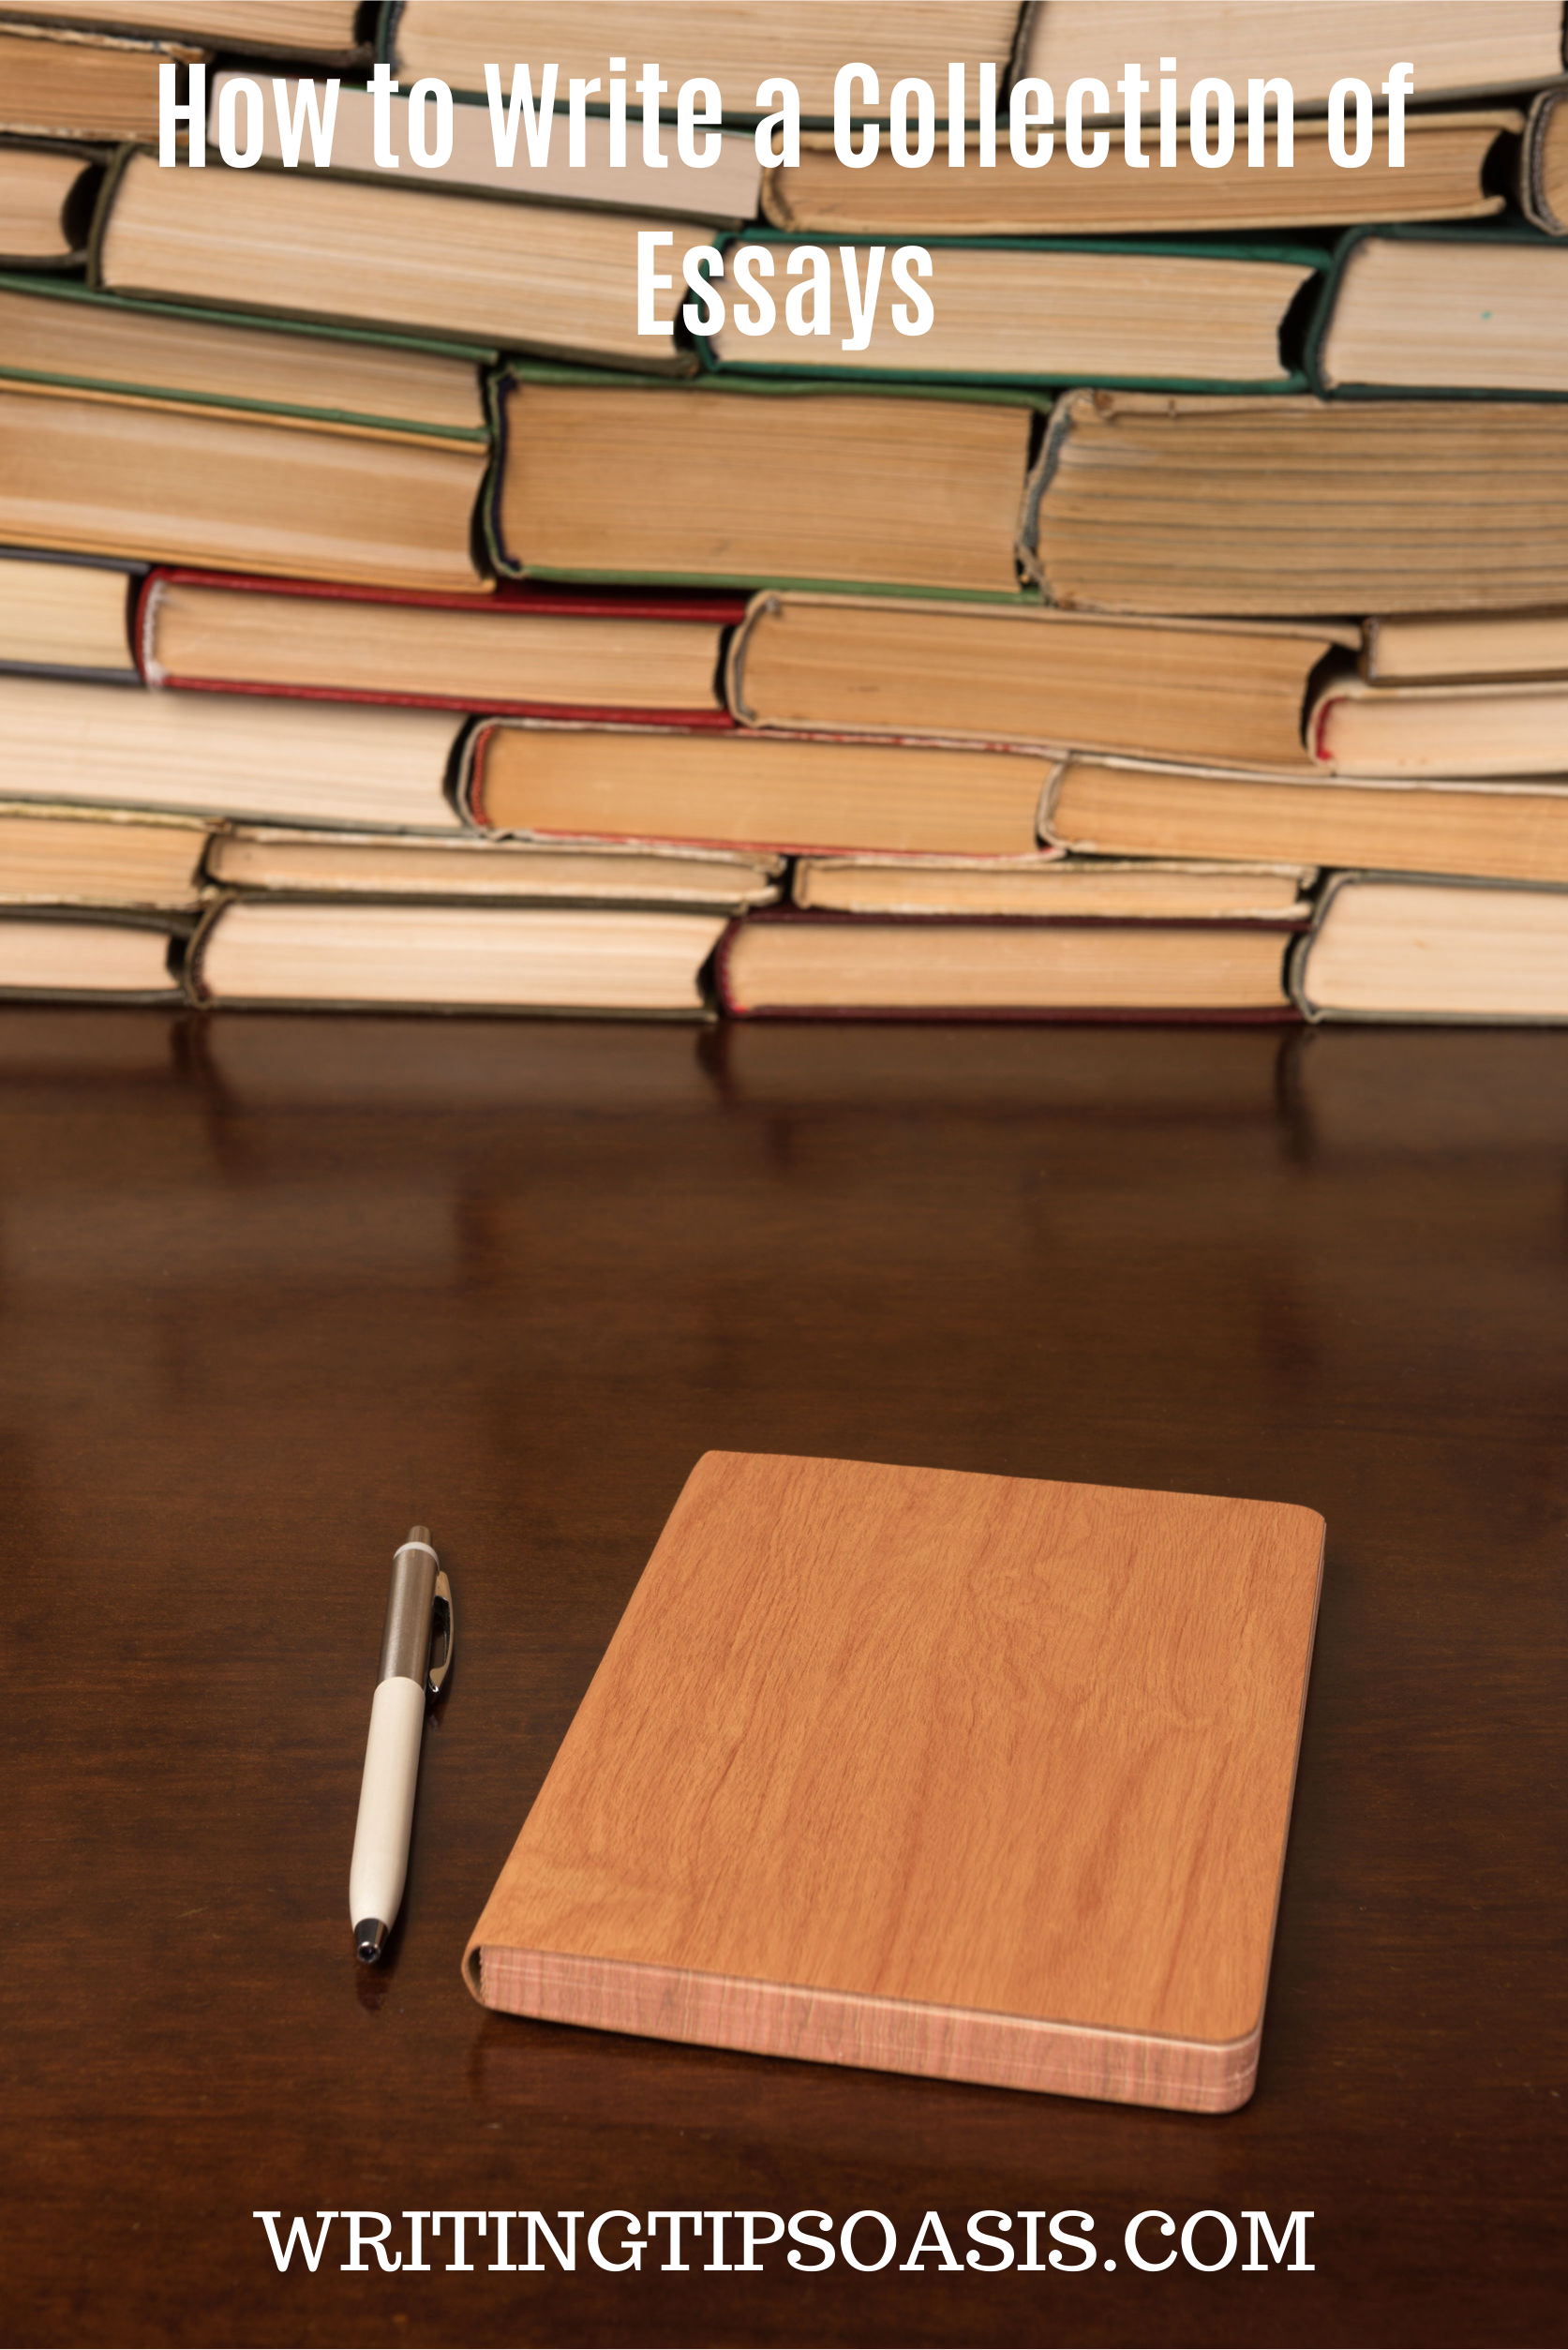 how to write an essay collection